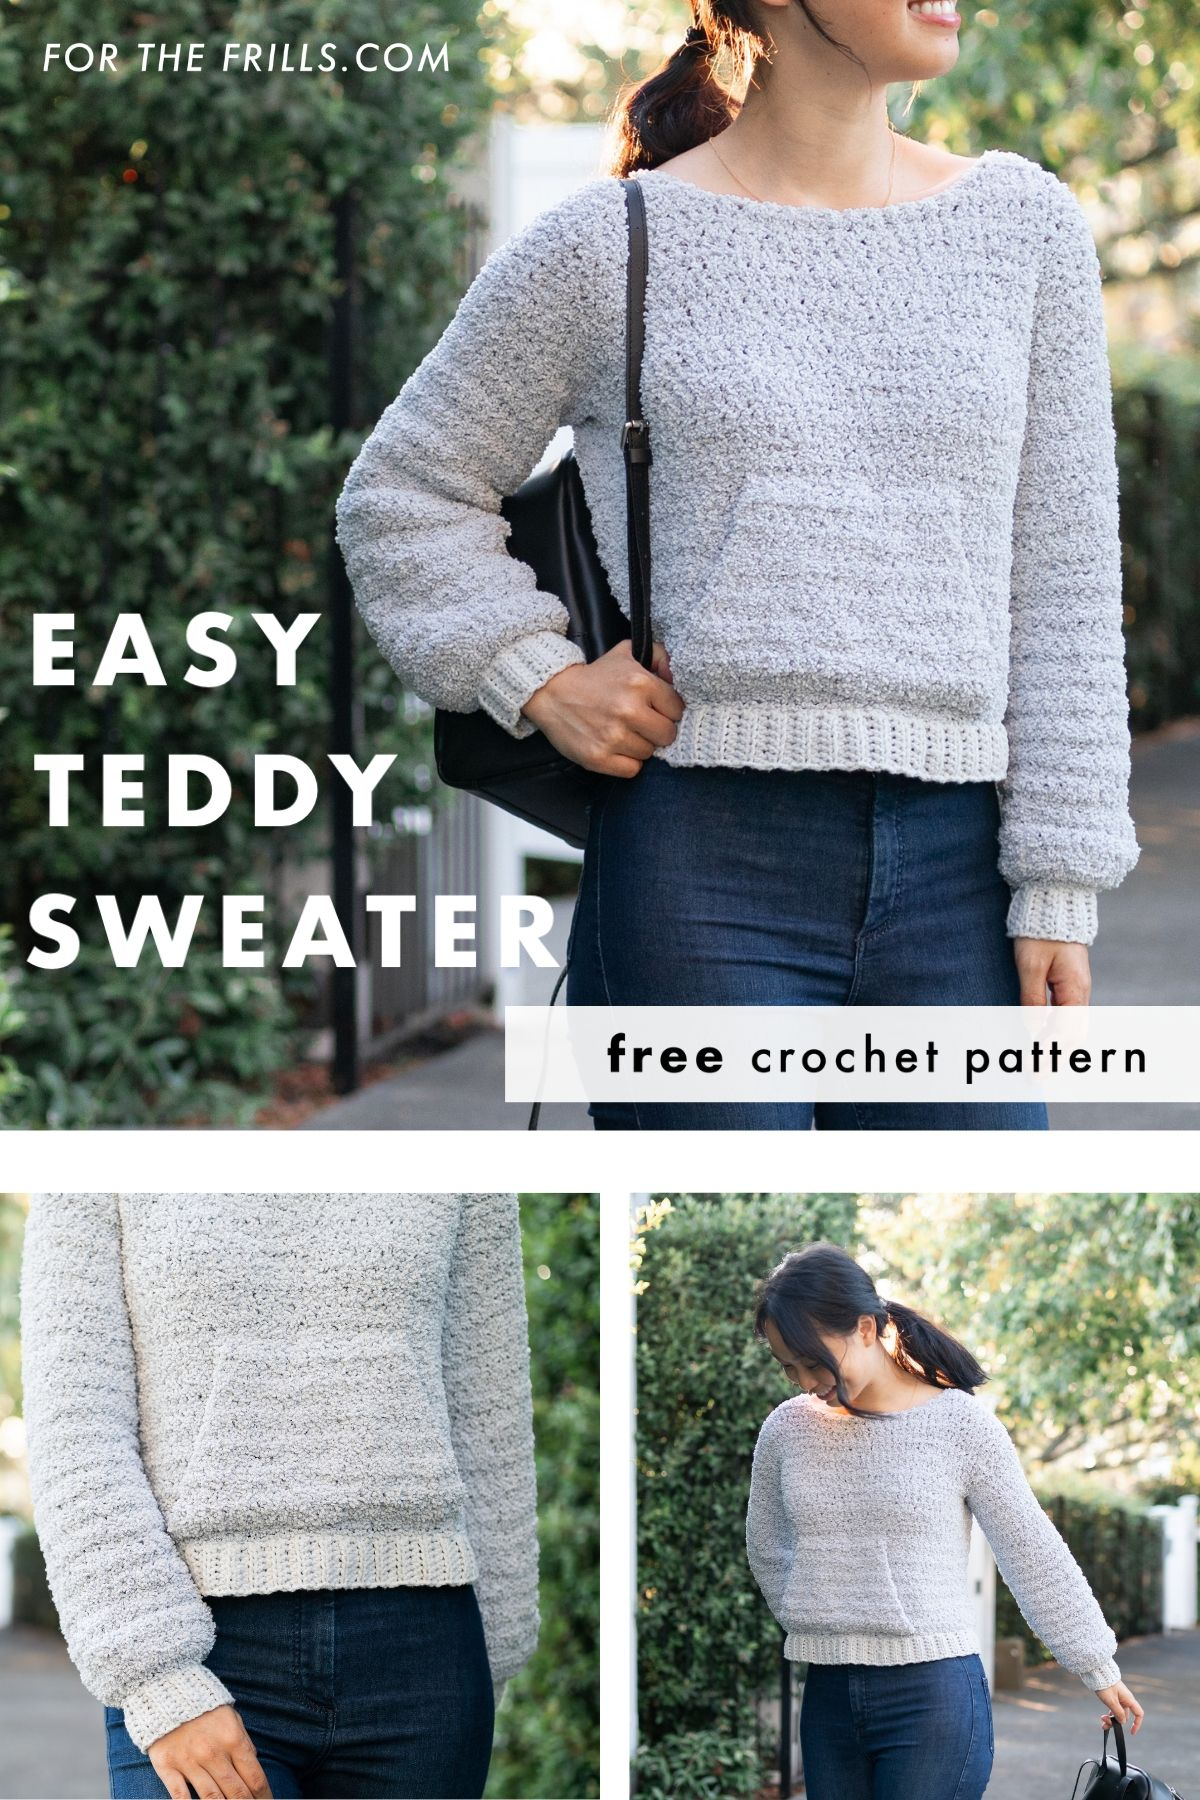 easy sherpa fleece sweater light grey fuzzy jumper front pocket with blue jeans free crochet pattern